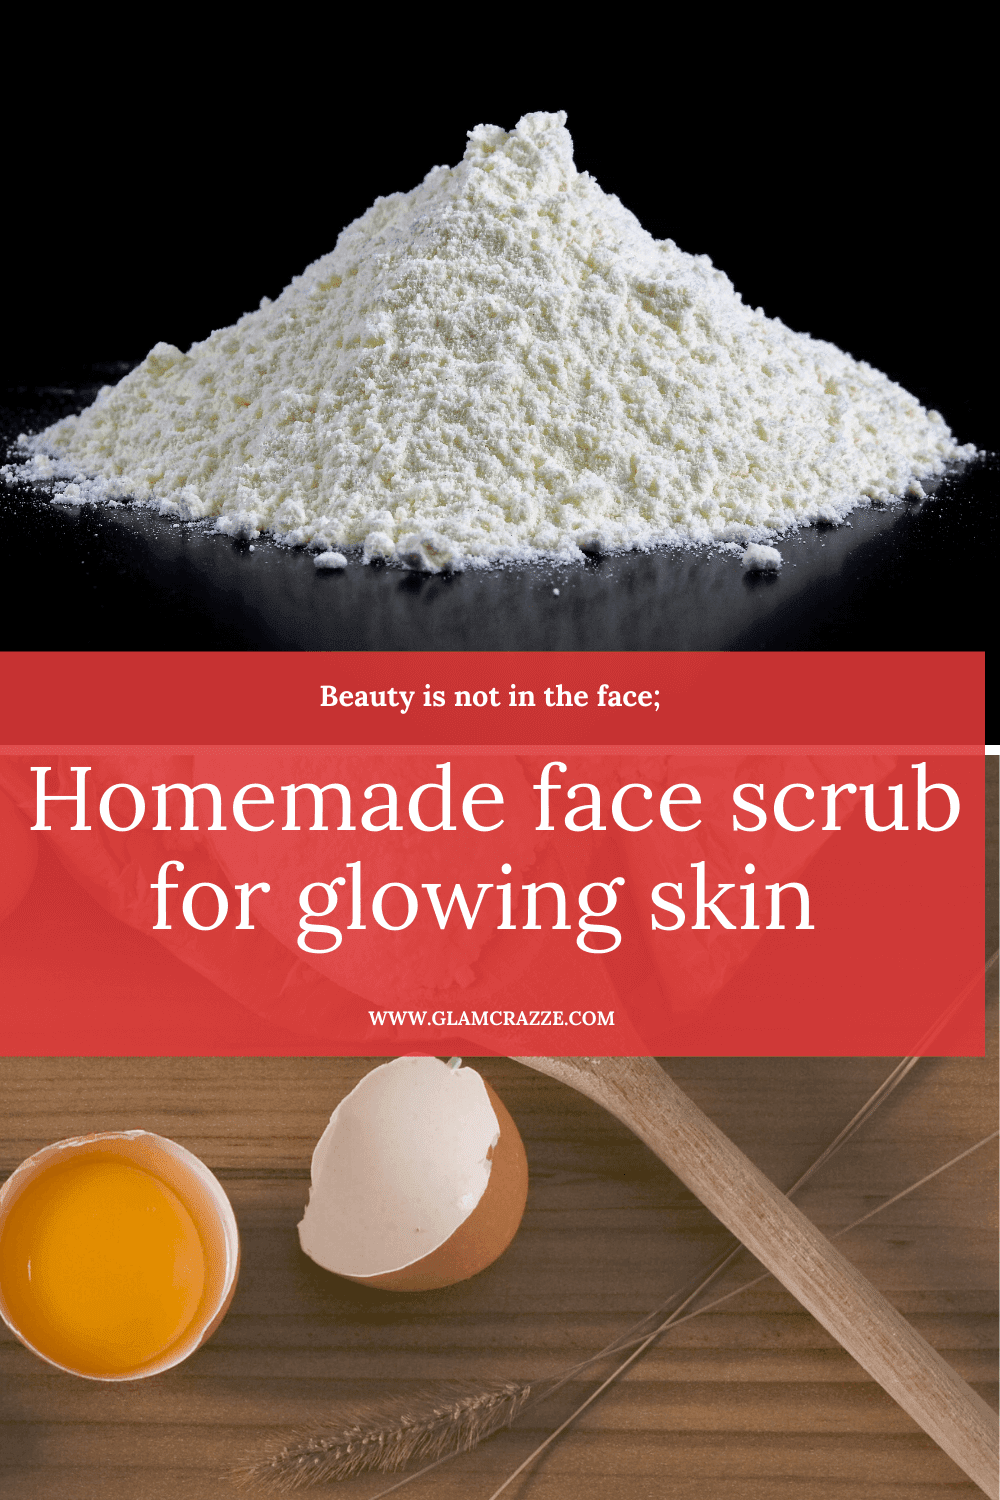 Homemade face scrub for glowing skin using rice flour